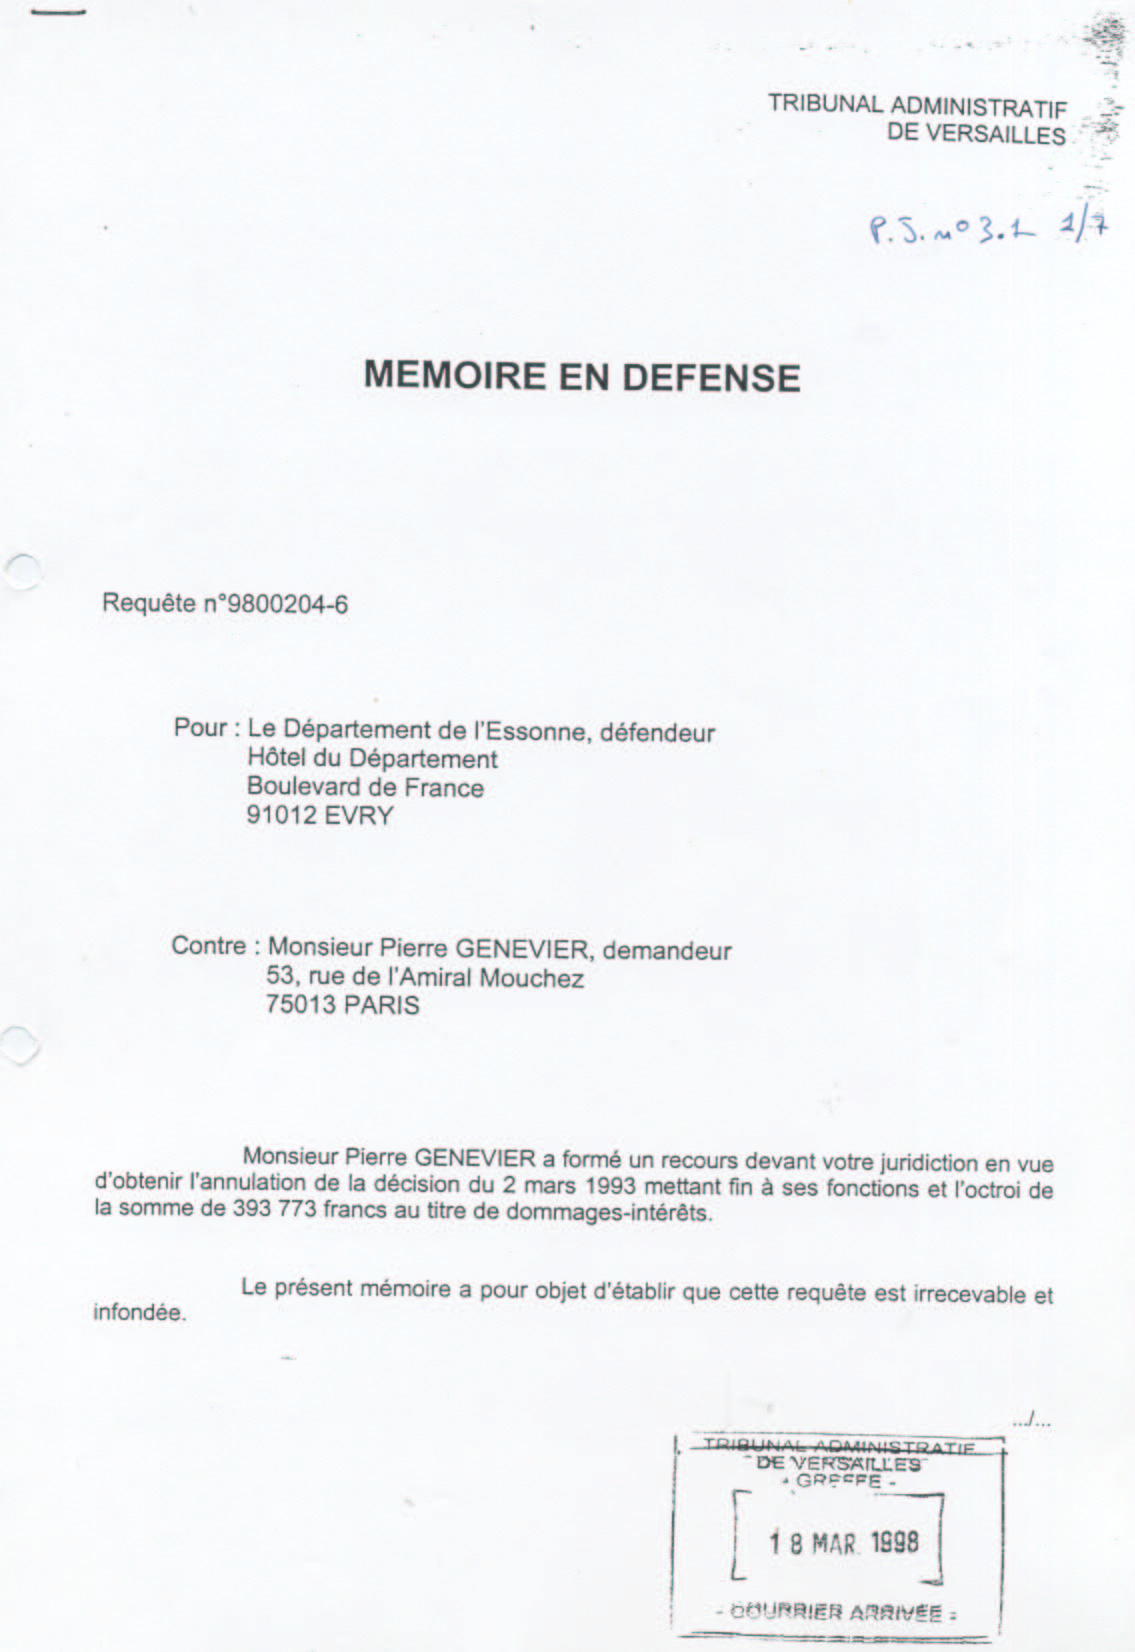 Lawsuits in France